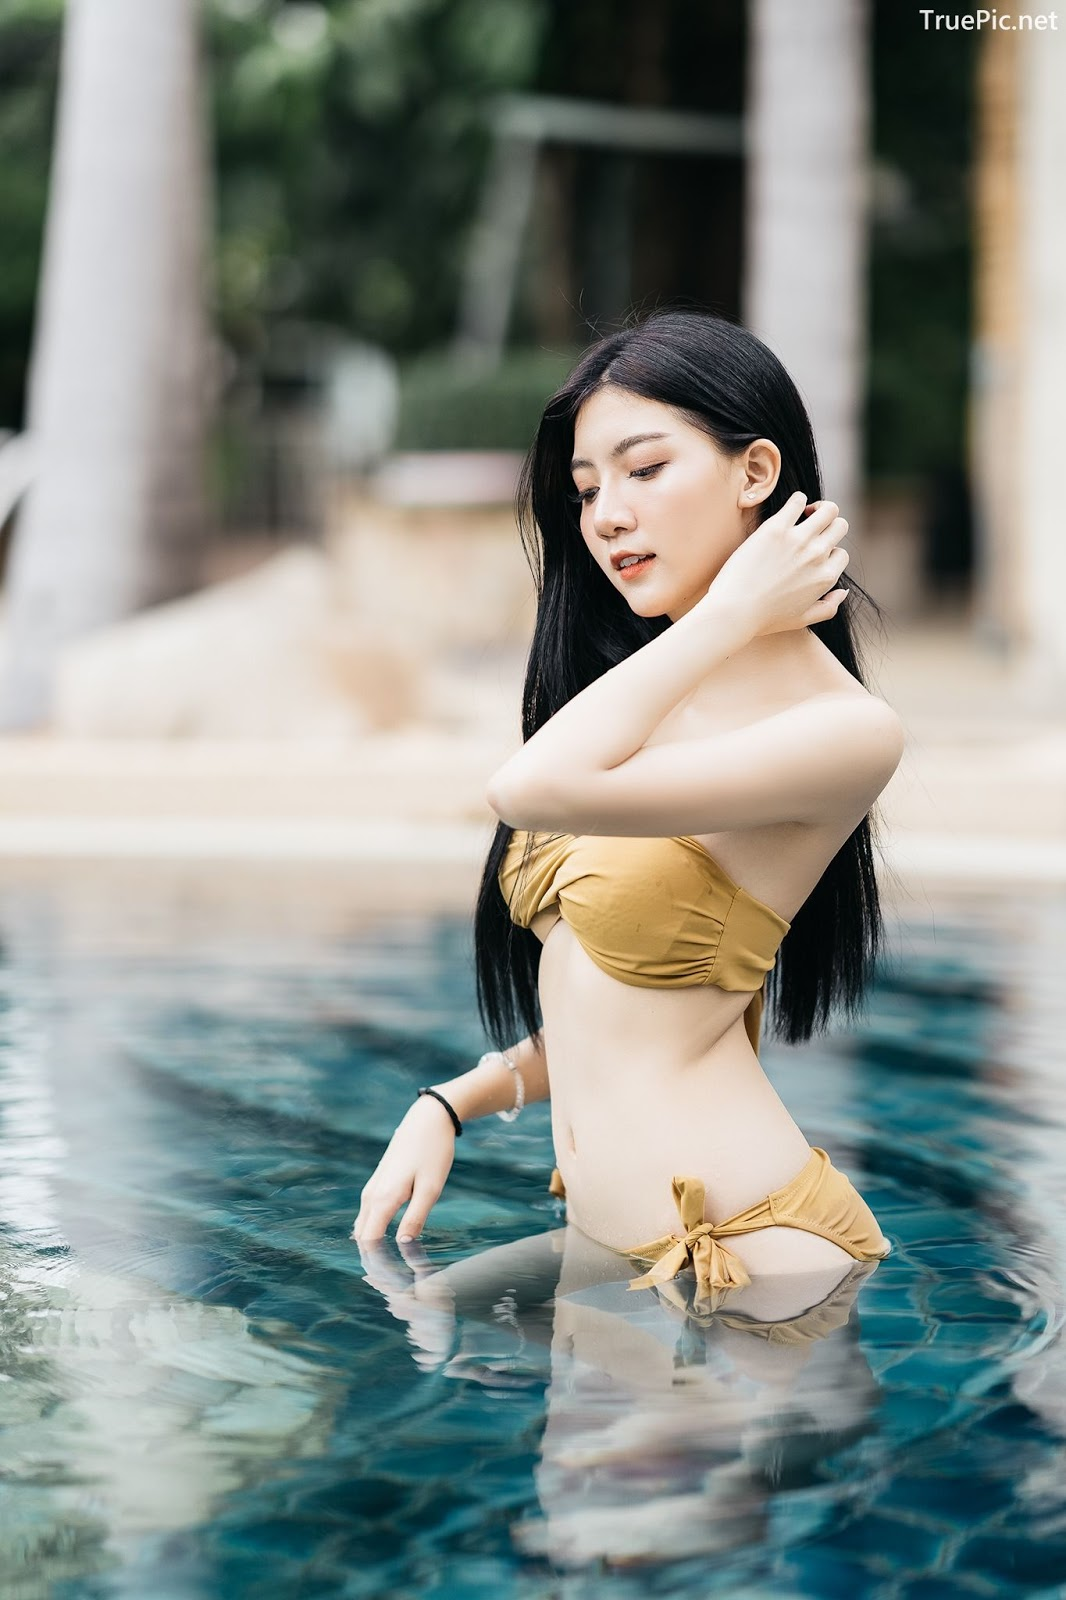 Image Thailand Model - Sasi Ngiunwan - Let's Summer Chilling - TruePic.net - Picture-1